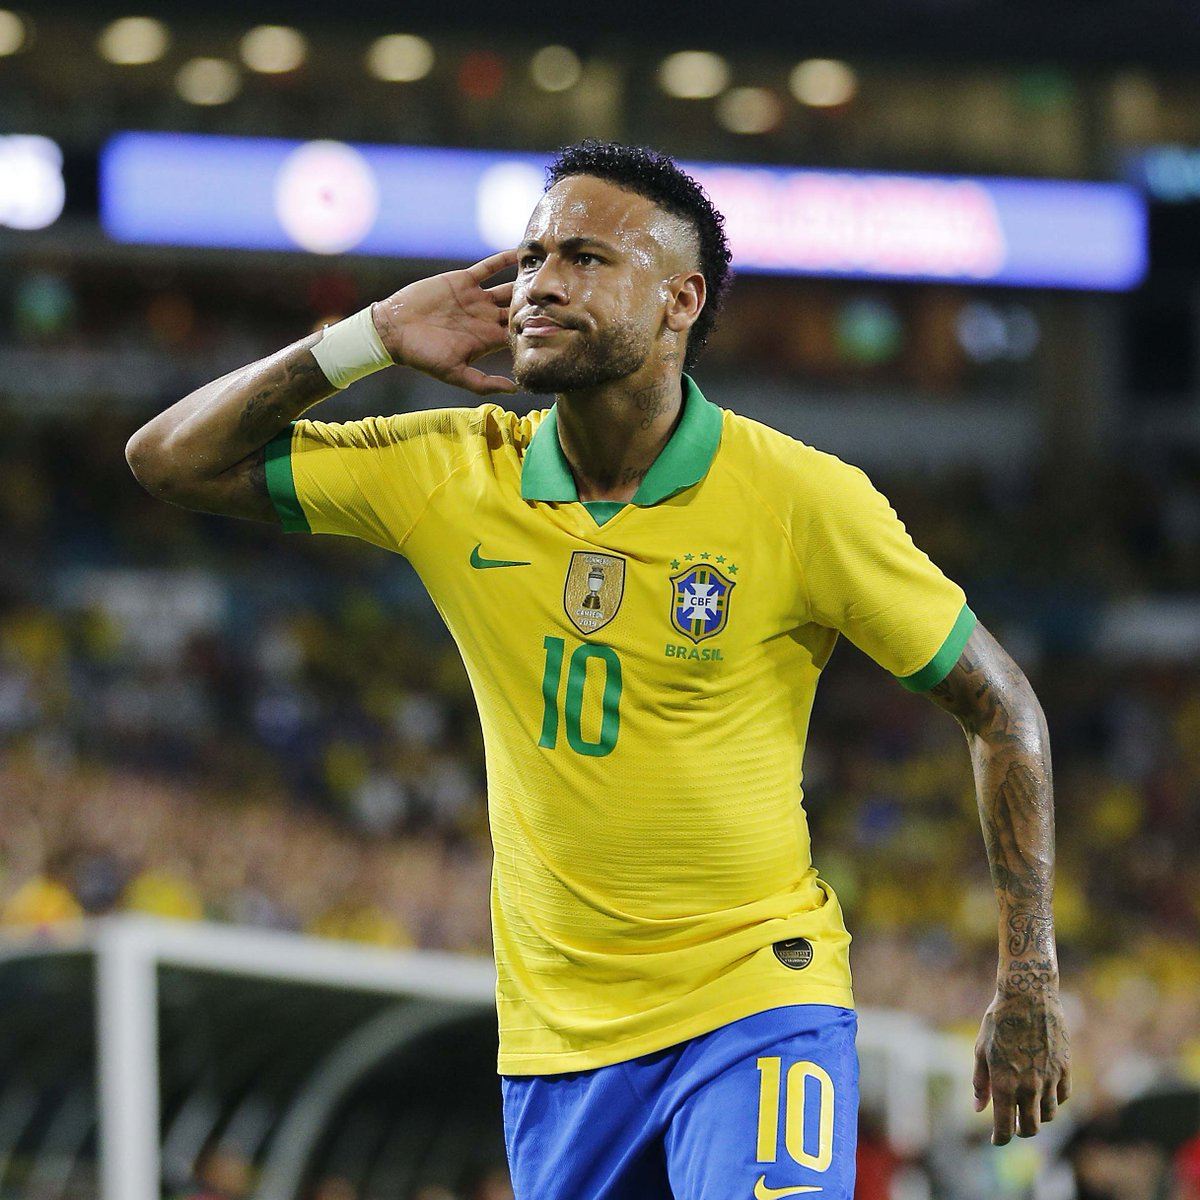 """Today's #PlayerInFocus is Neymar    Santos  Barcelona  PSG   Brazil   """"He's the heir to the throne of Cristiano Ronaldo and Lionel Messi.""""  One of a kind  <br>http://pic.twitter.com/3d0asM67wS"""